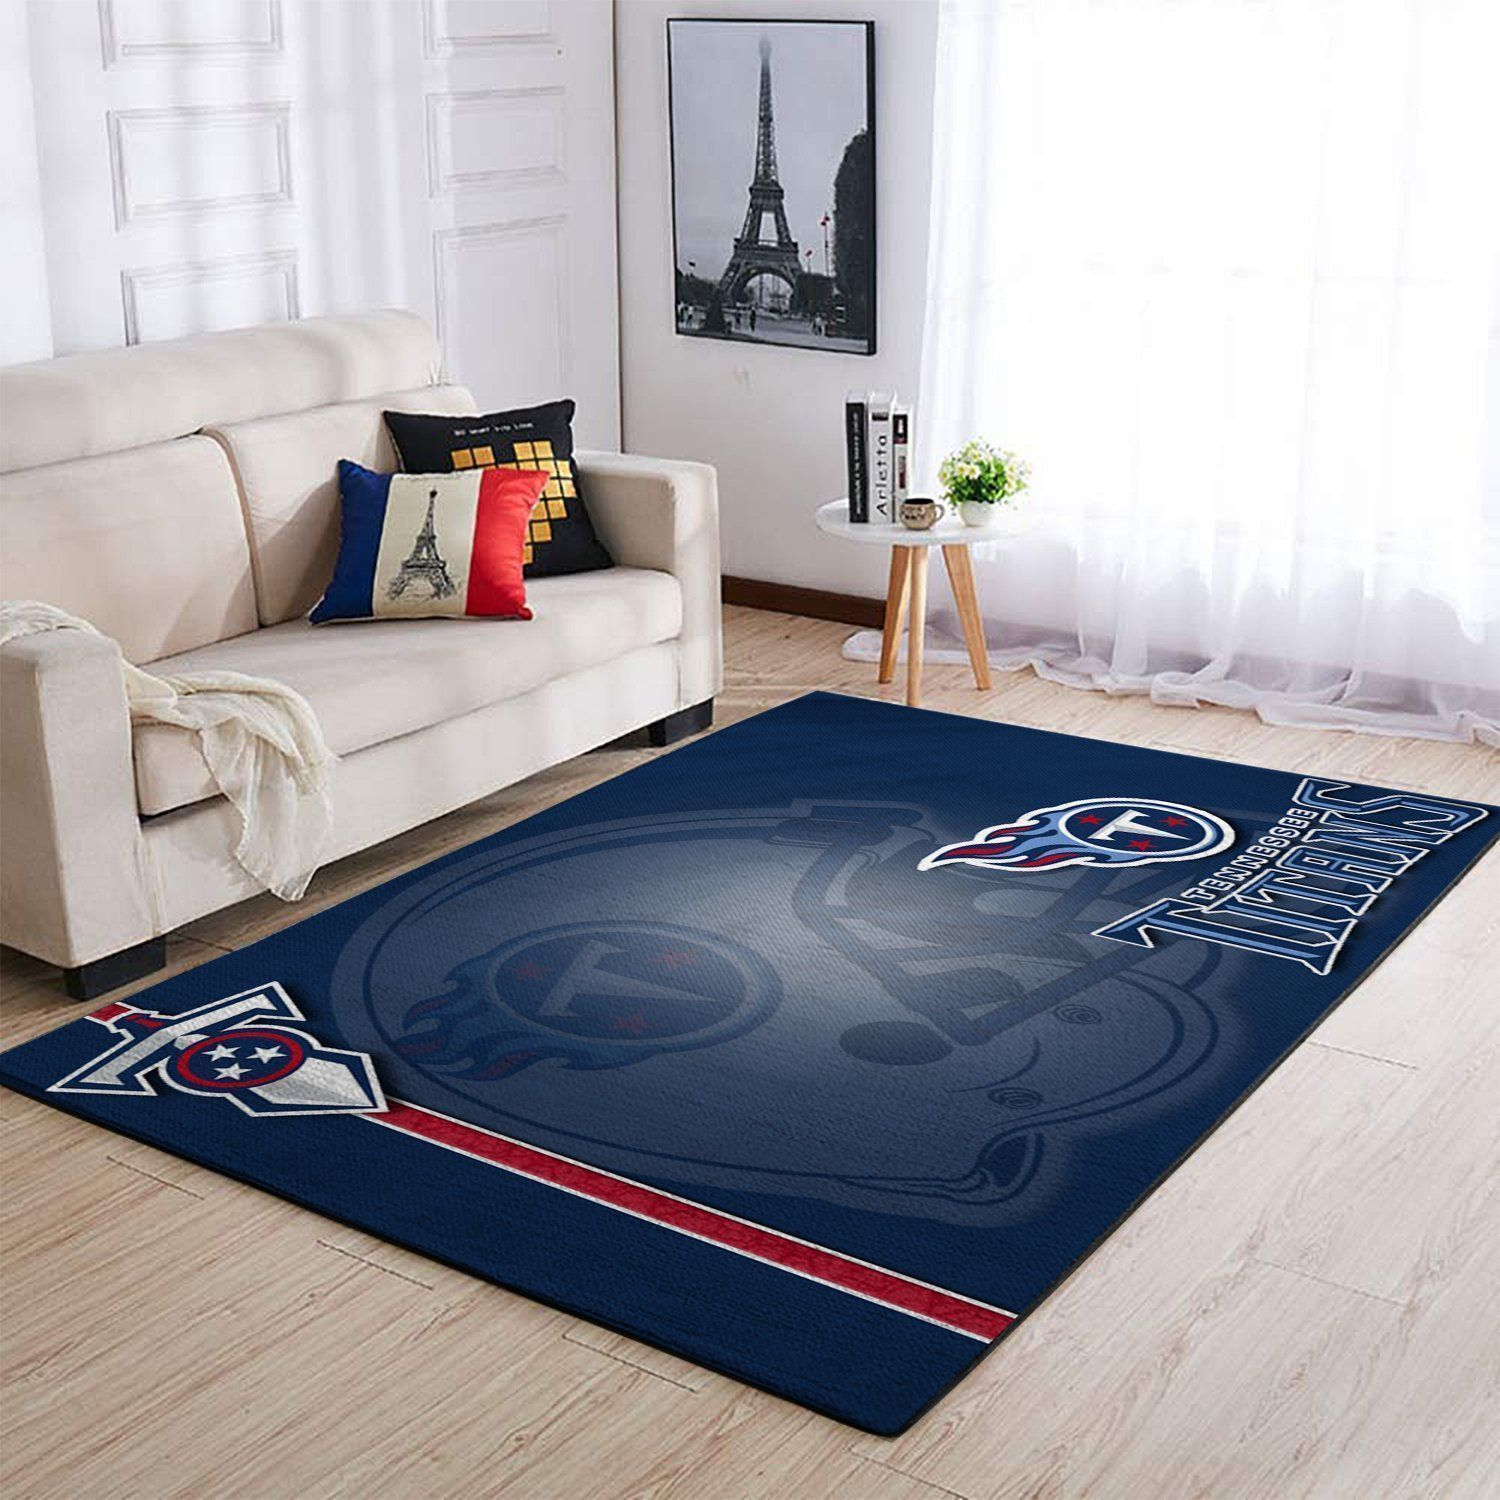 Tennessee Titans Area Rugs NFL Football Living Room Carpet Team Logo Custom Floor Home Decor 1910074